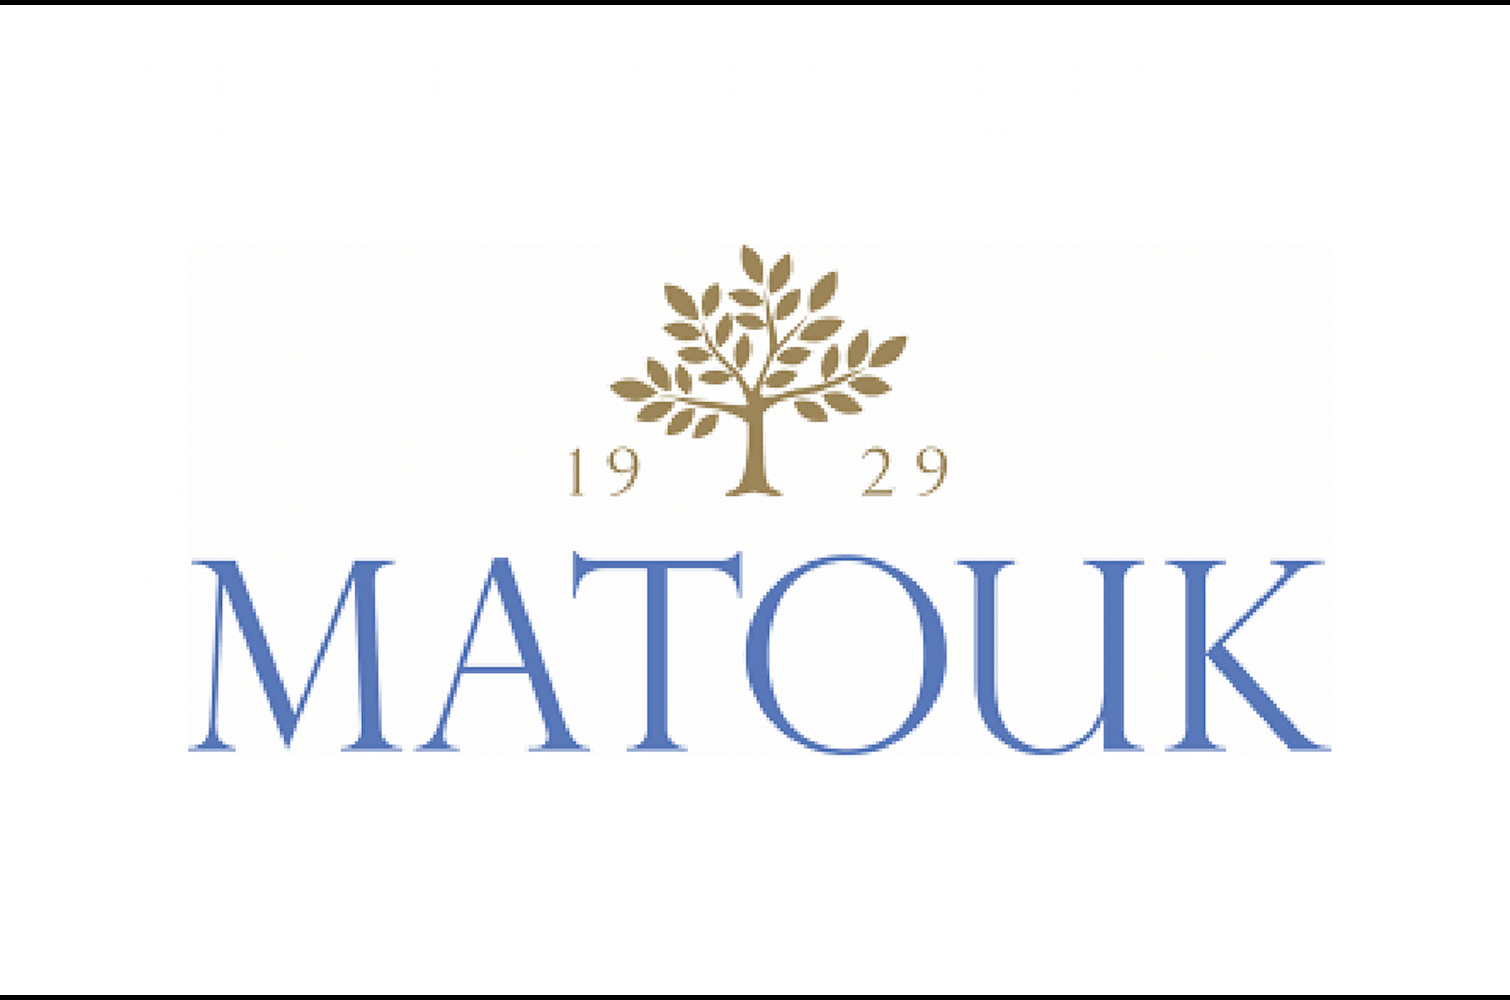 MATOUK / BRAND AND VISUAL STRATEGY    Undertook in-depth analysis - brand, category, consumer, expert - resulting in Matouk DNA definition, evolved brand positioning, inspirational storyboards, and a new visual identity system to take the brand to successful consumer-facing retail commercialization.